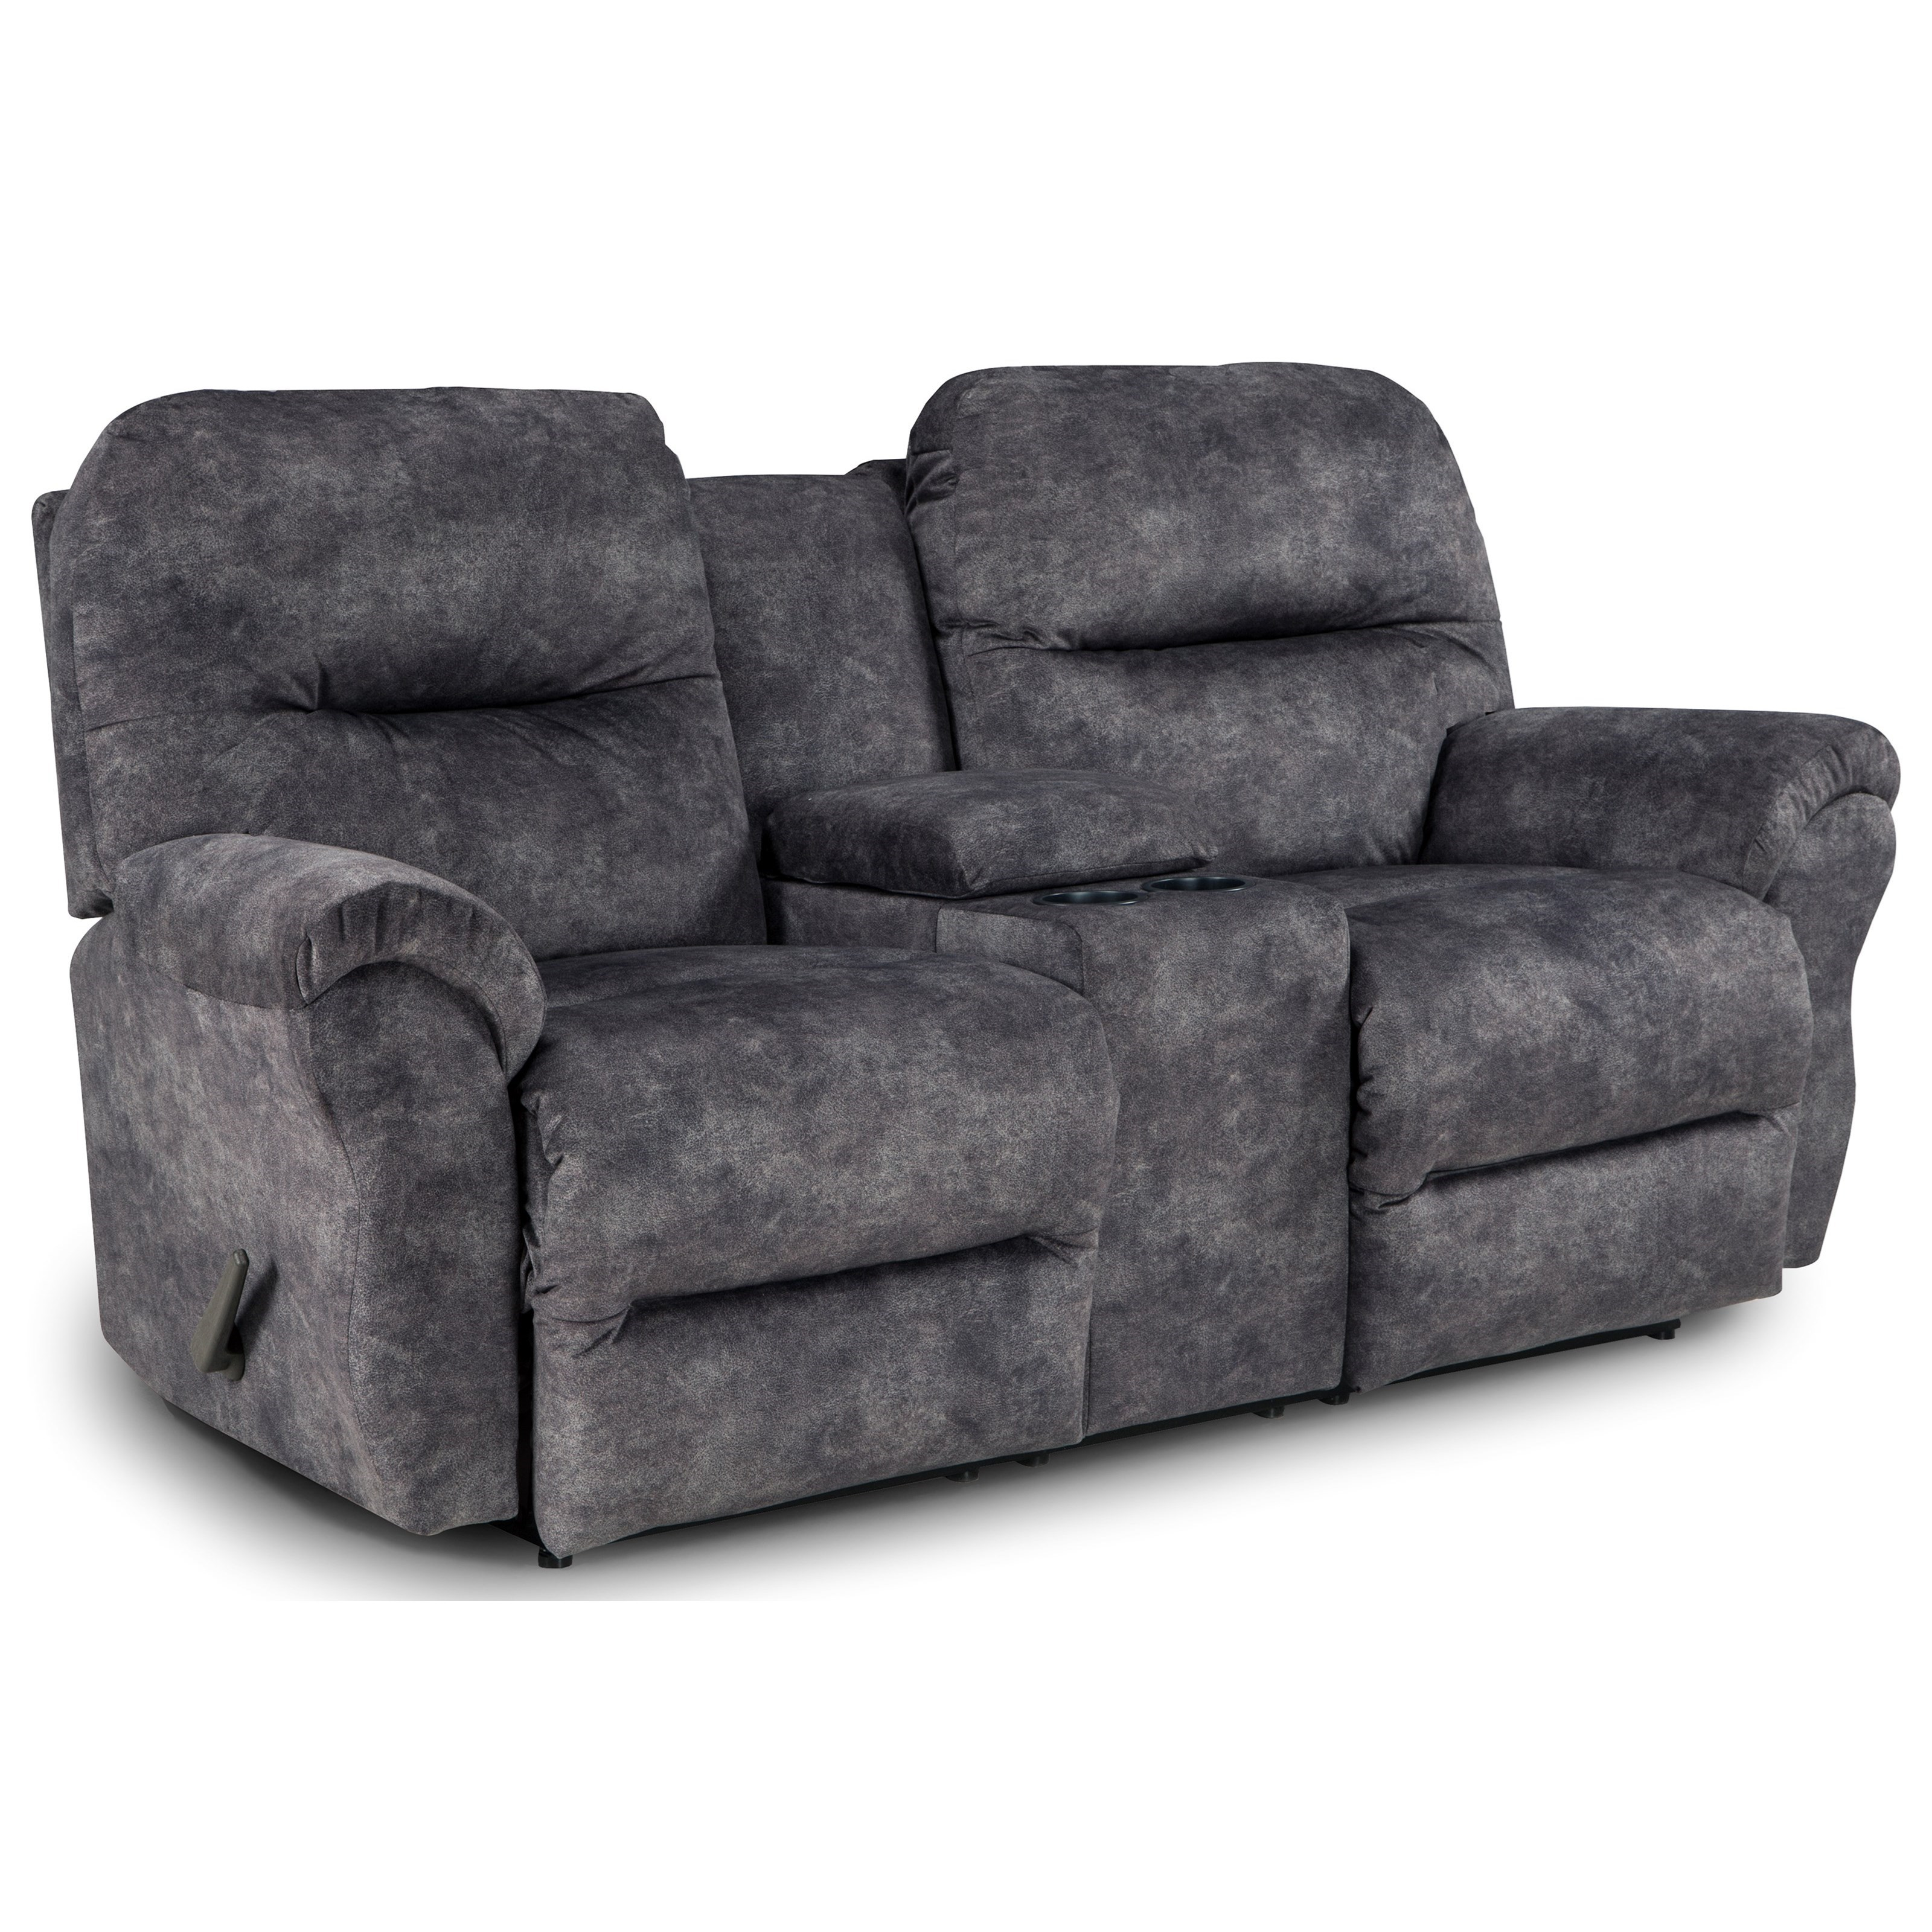 Bodie Love Seat by Best Home Furnishings at Westrich Furniture & Appliances